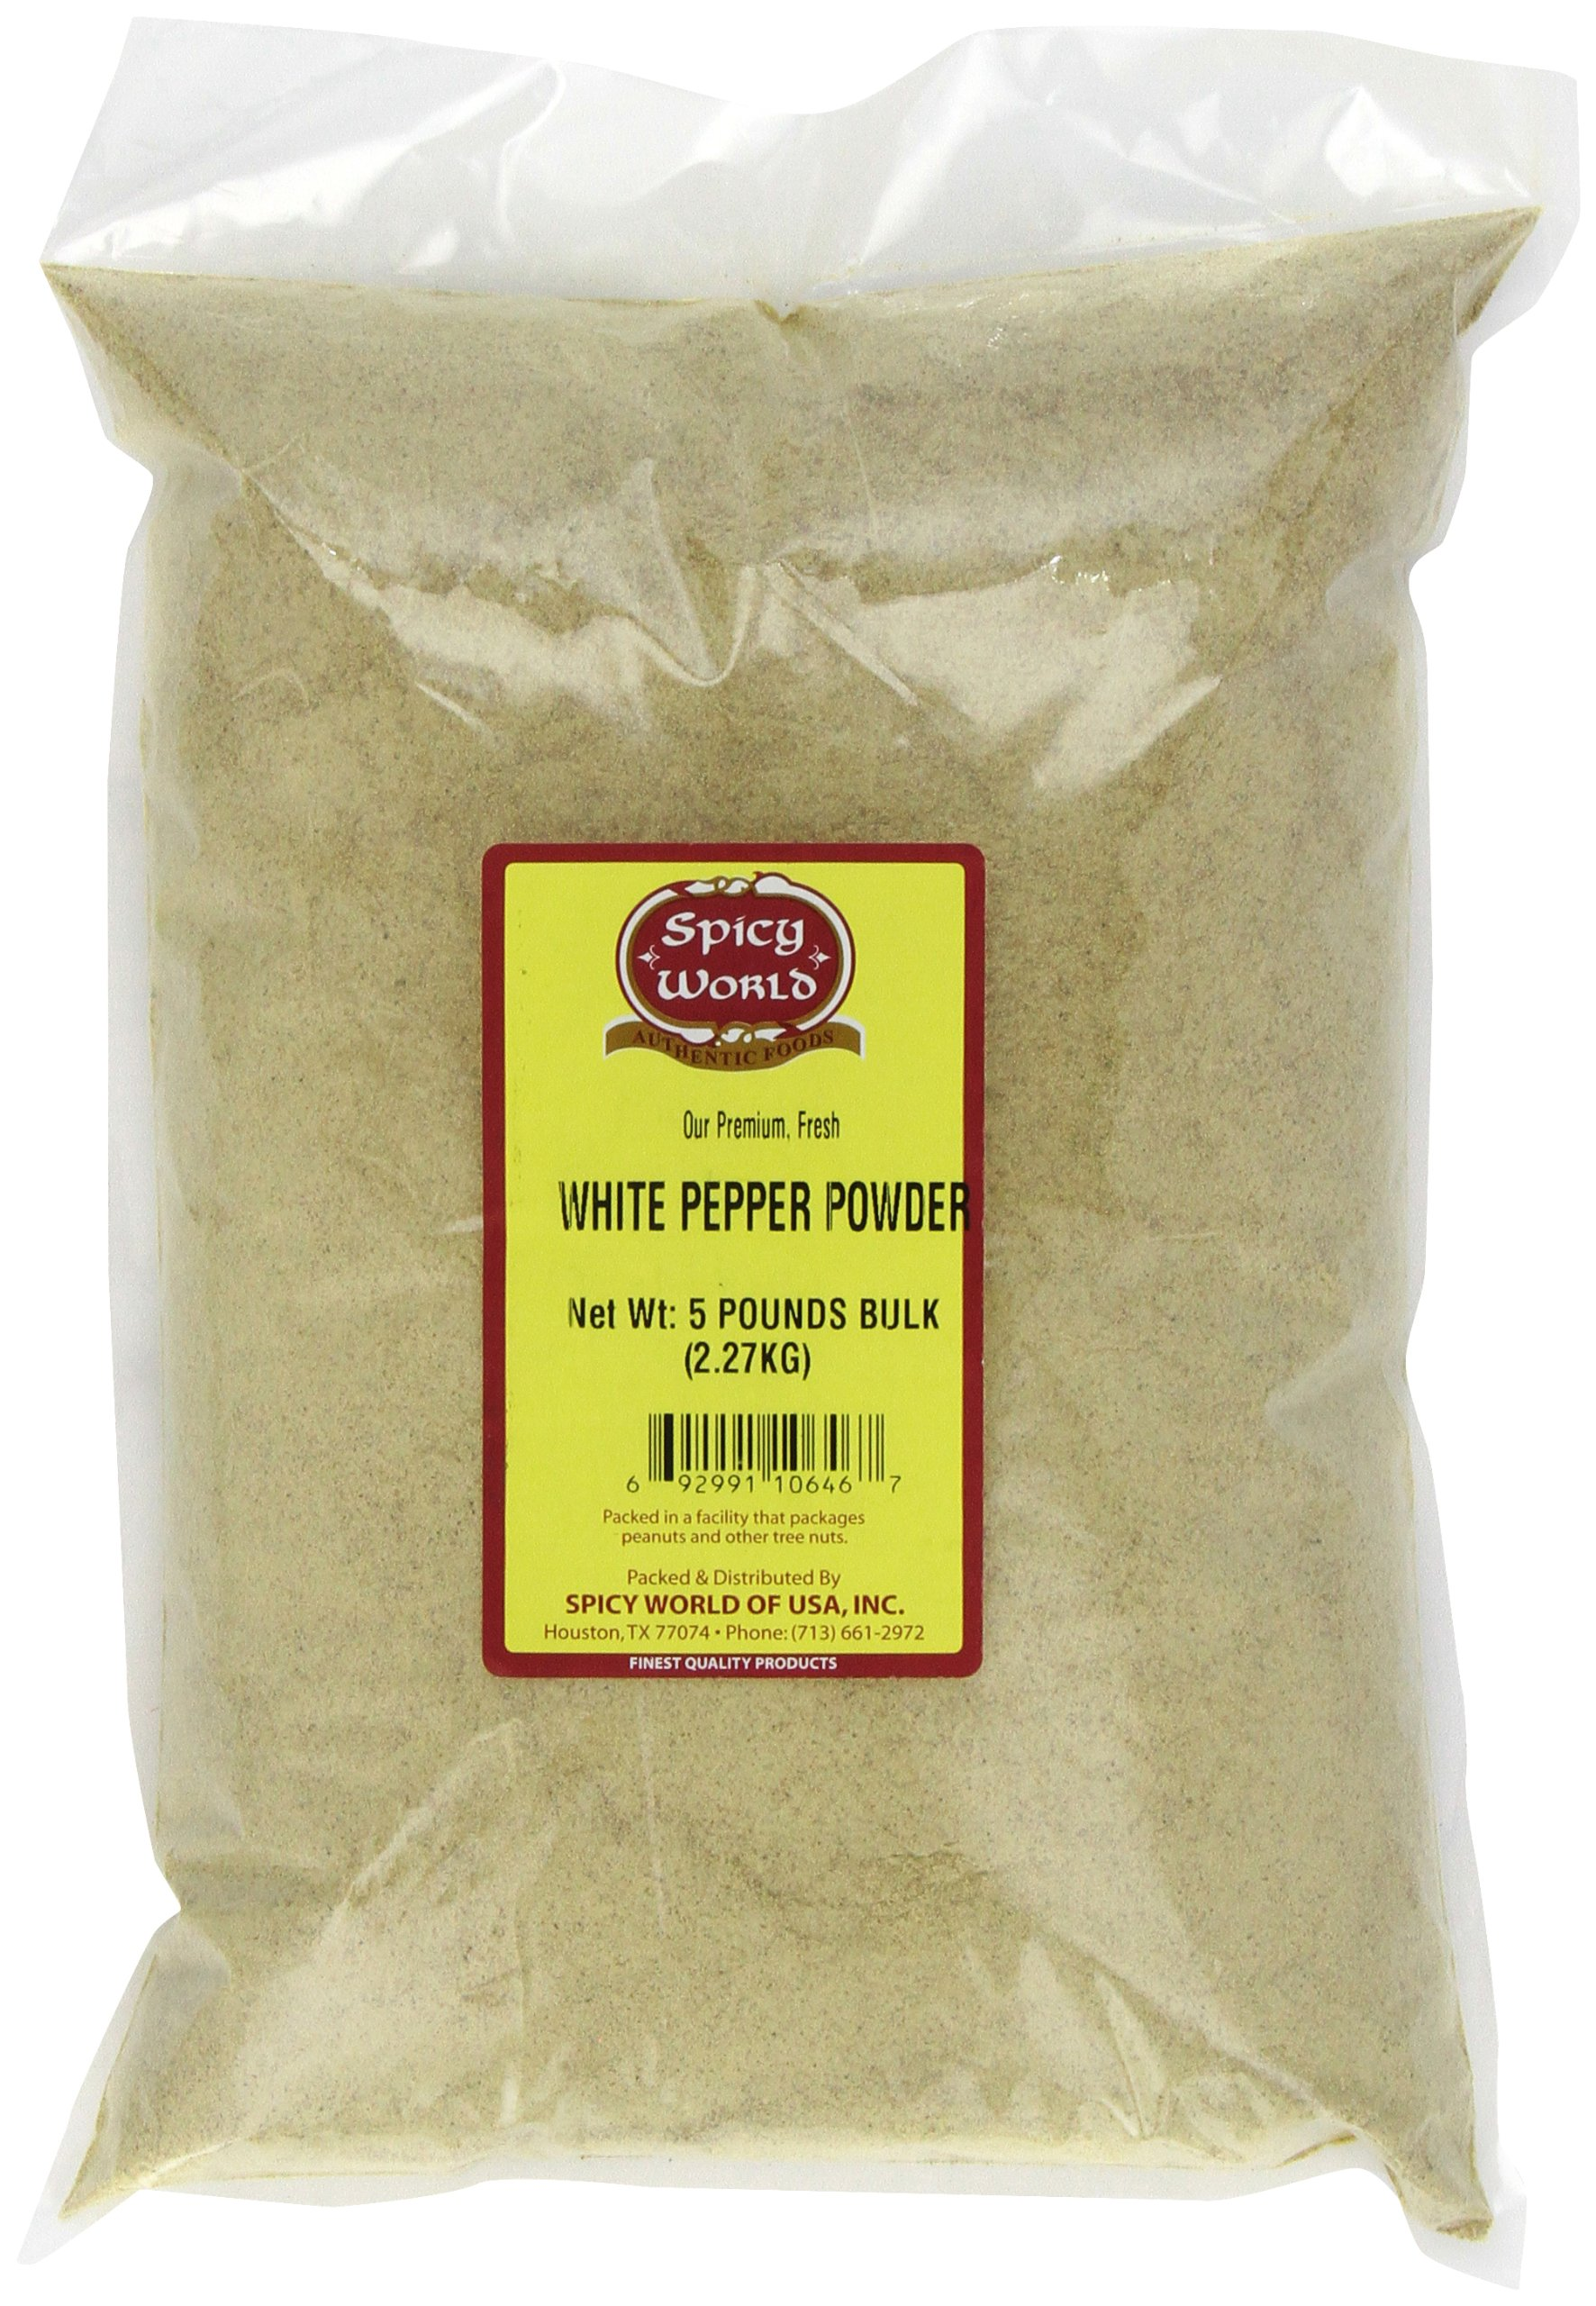 Spicy World White Pepper Powder Bulk, 5-Pounds